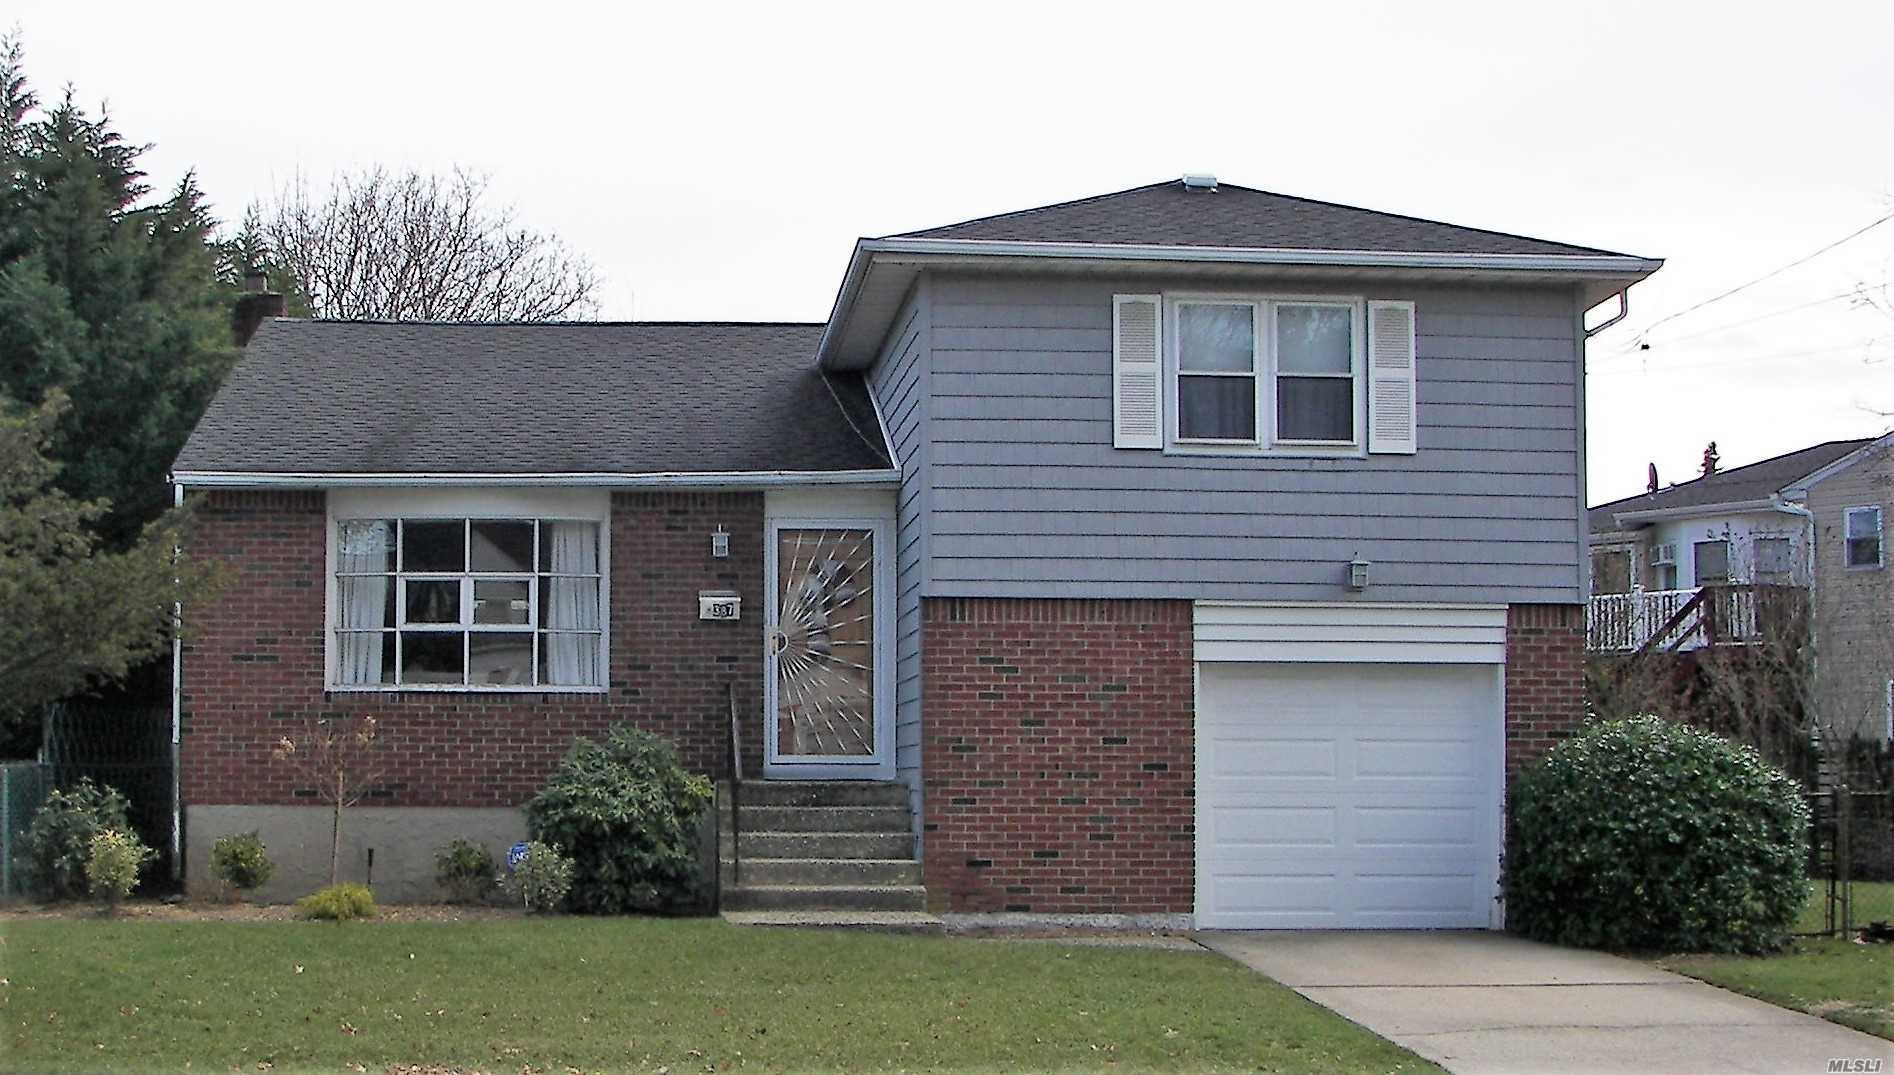 Super clean split level home, featuring wood floors, 3drms/2bths, heated sunroom, large yard & 1 car attached garage. This split has 3 levels, the unfinished basement providing more living space potential. Close to all transportation & shopping. Prime North Baldwin location.